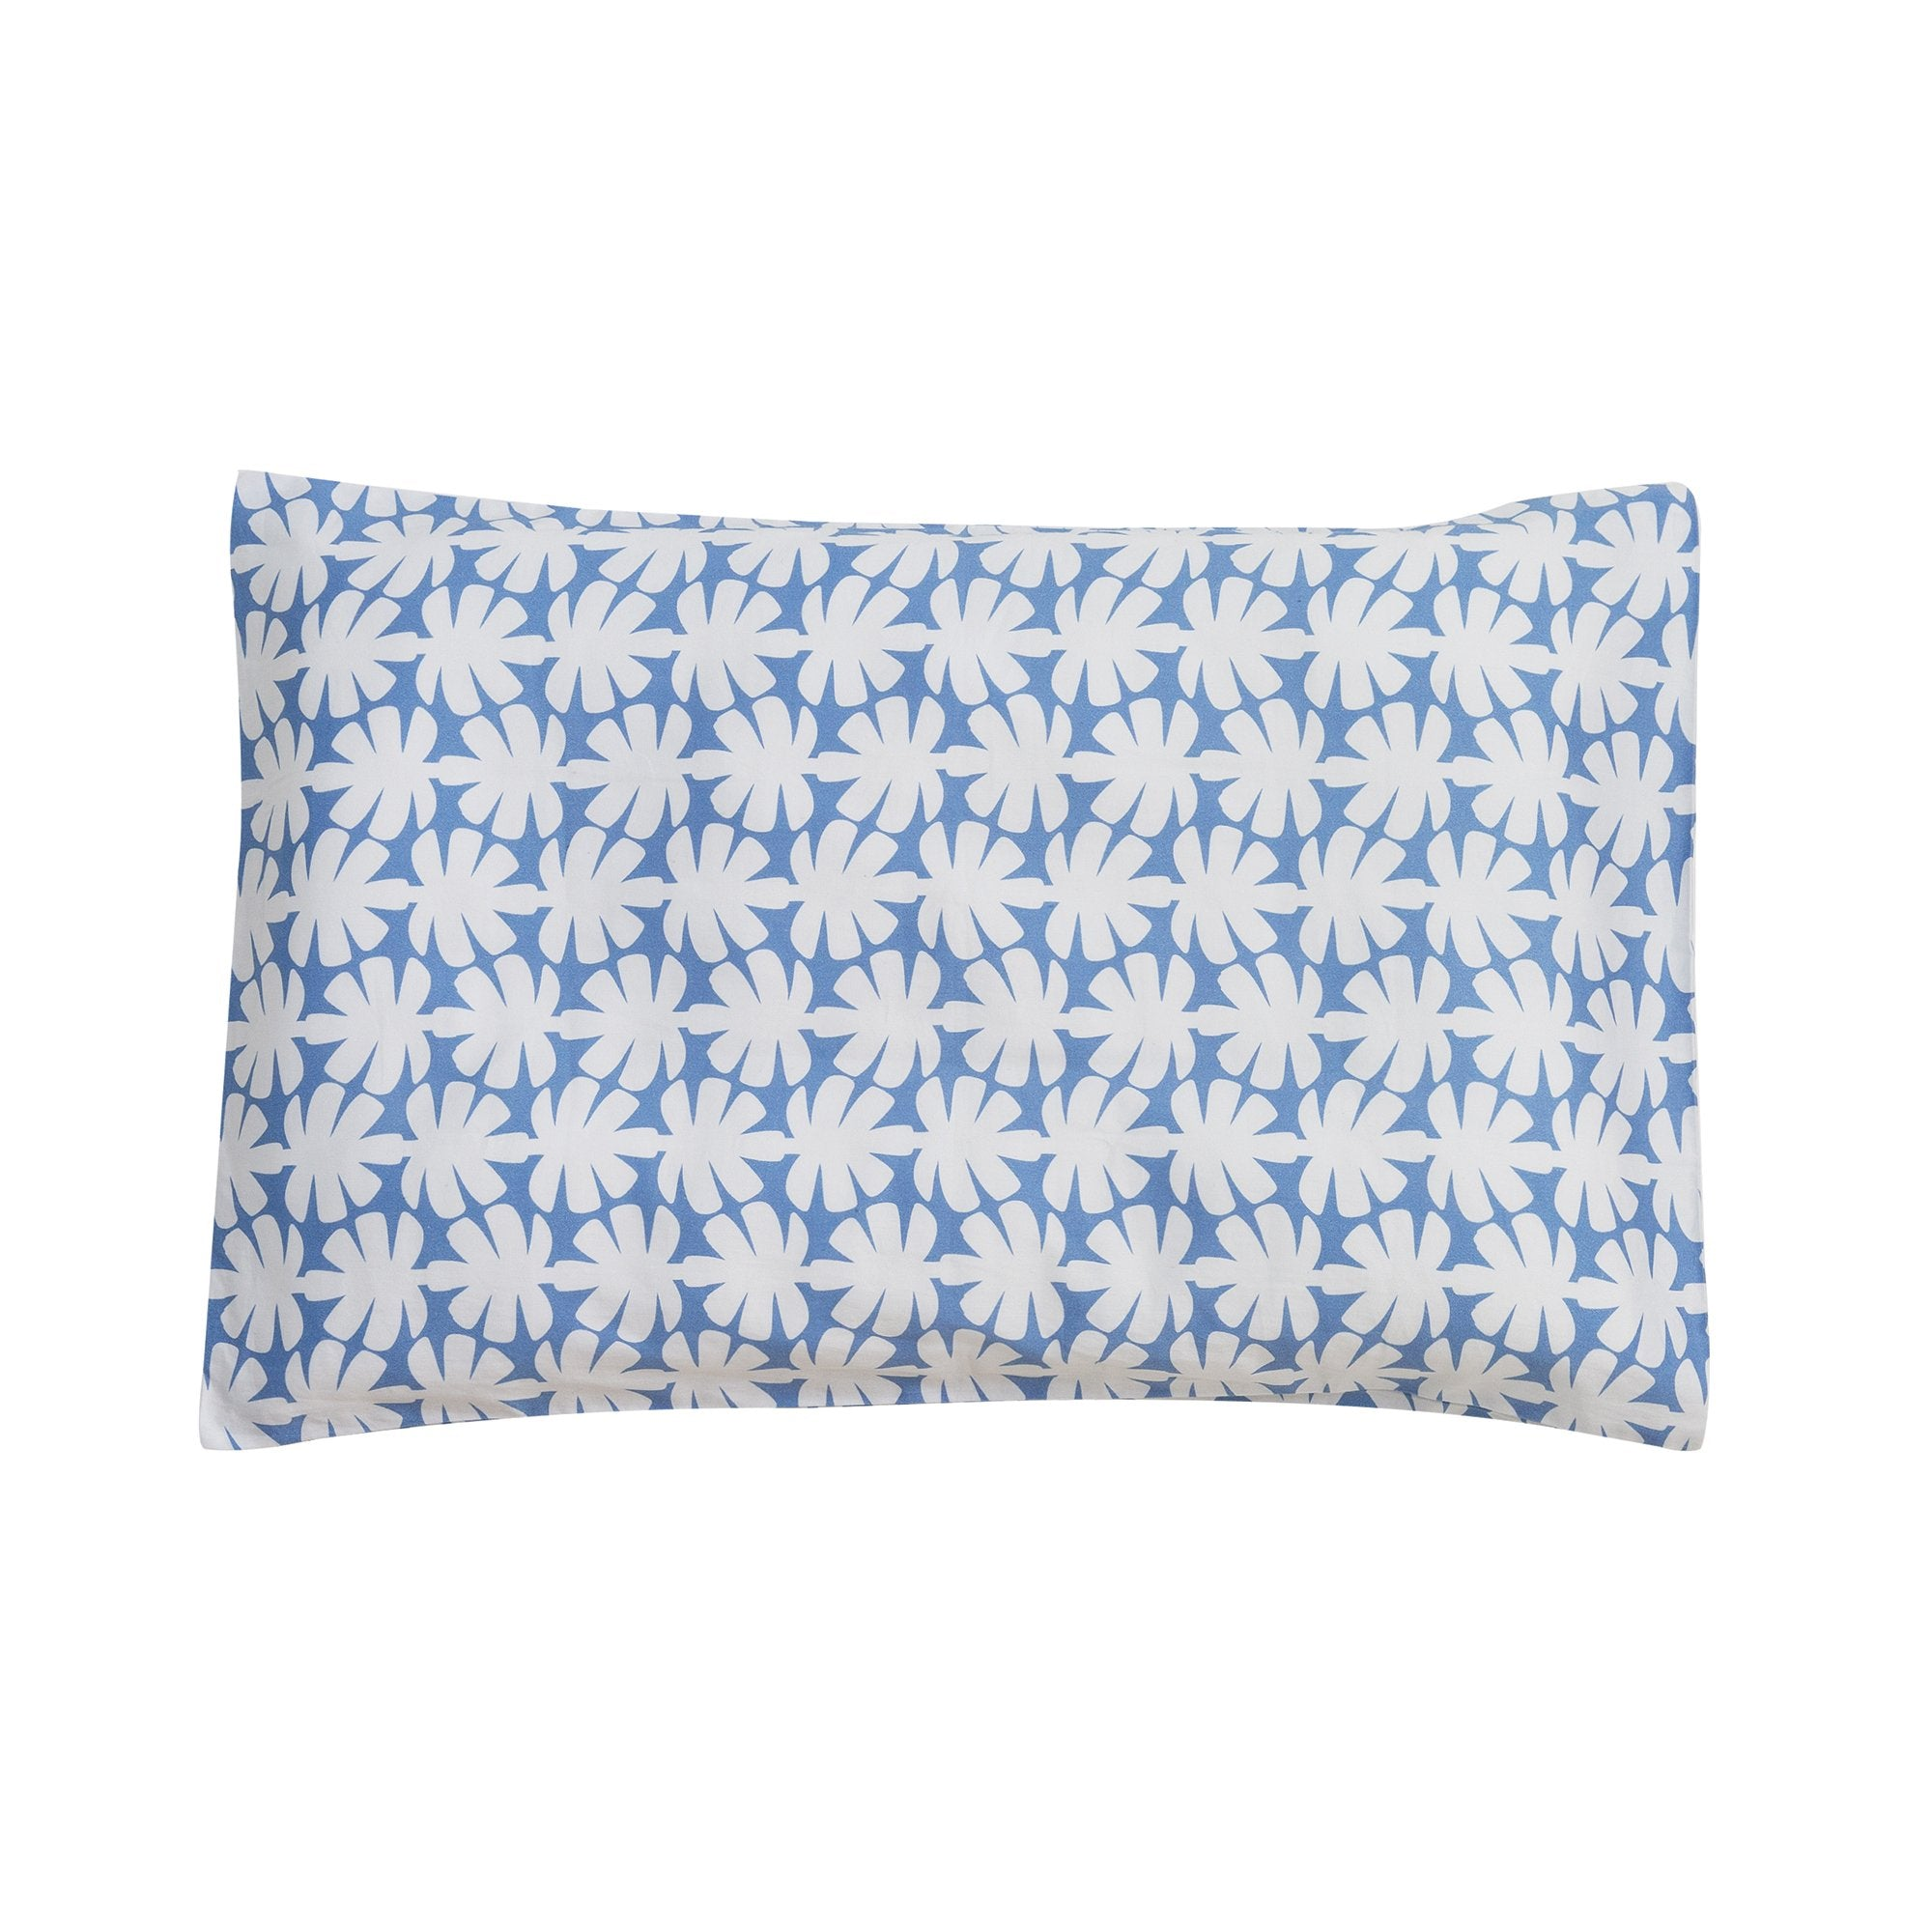 Kikau's Ocean Blue Coconut Palm kids pillowcase on white background